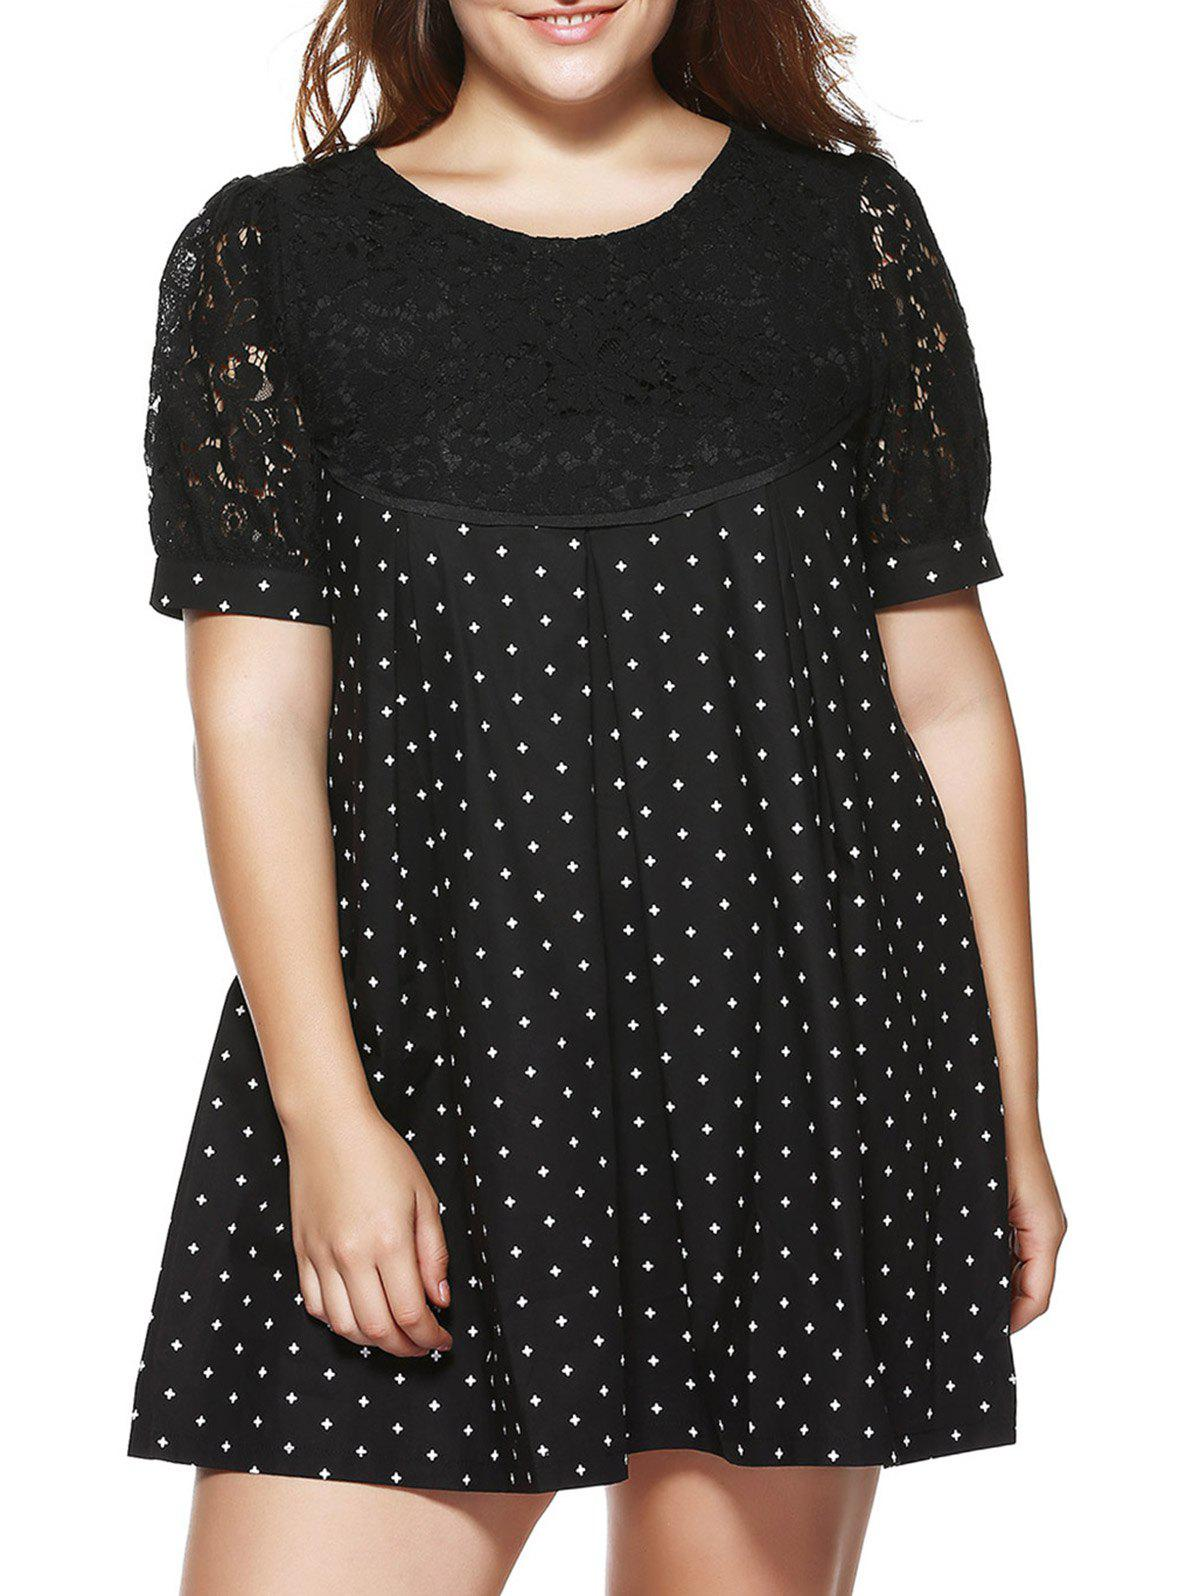 Oversized Cute Puff Sleeve Lace Splicing Dress - BLACK 4XL